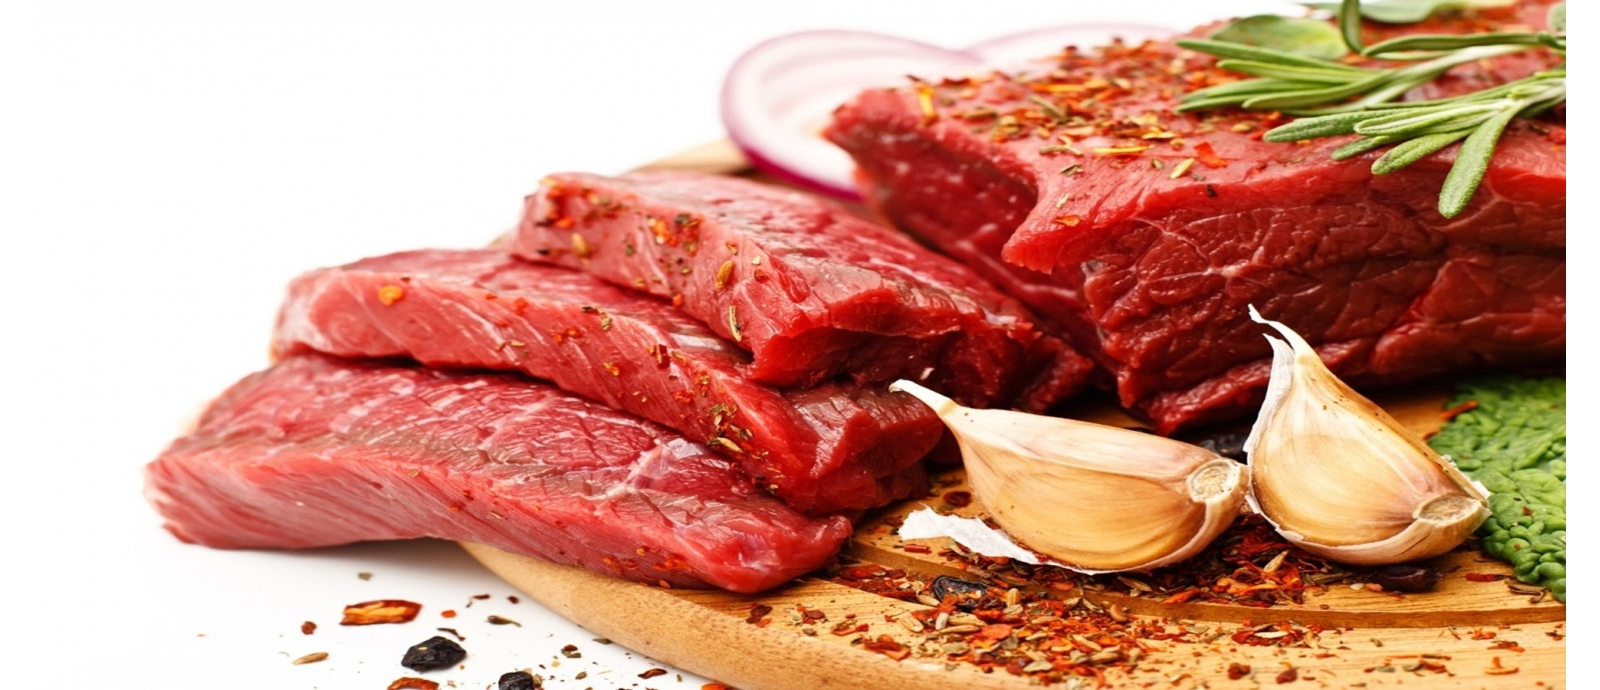 Greek meat products